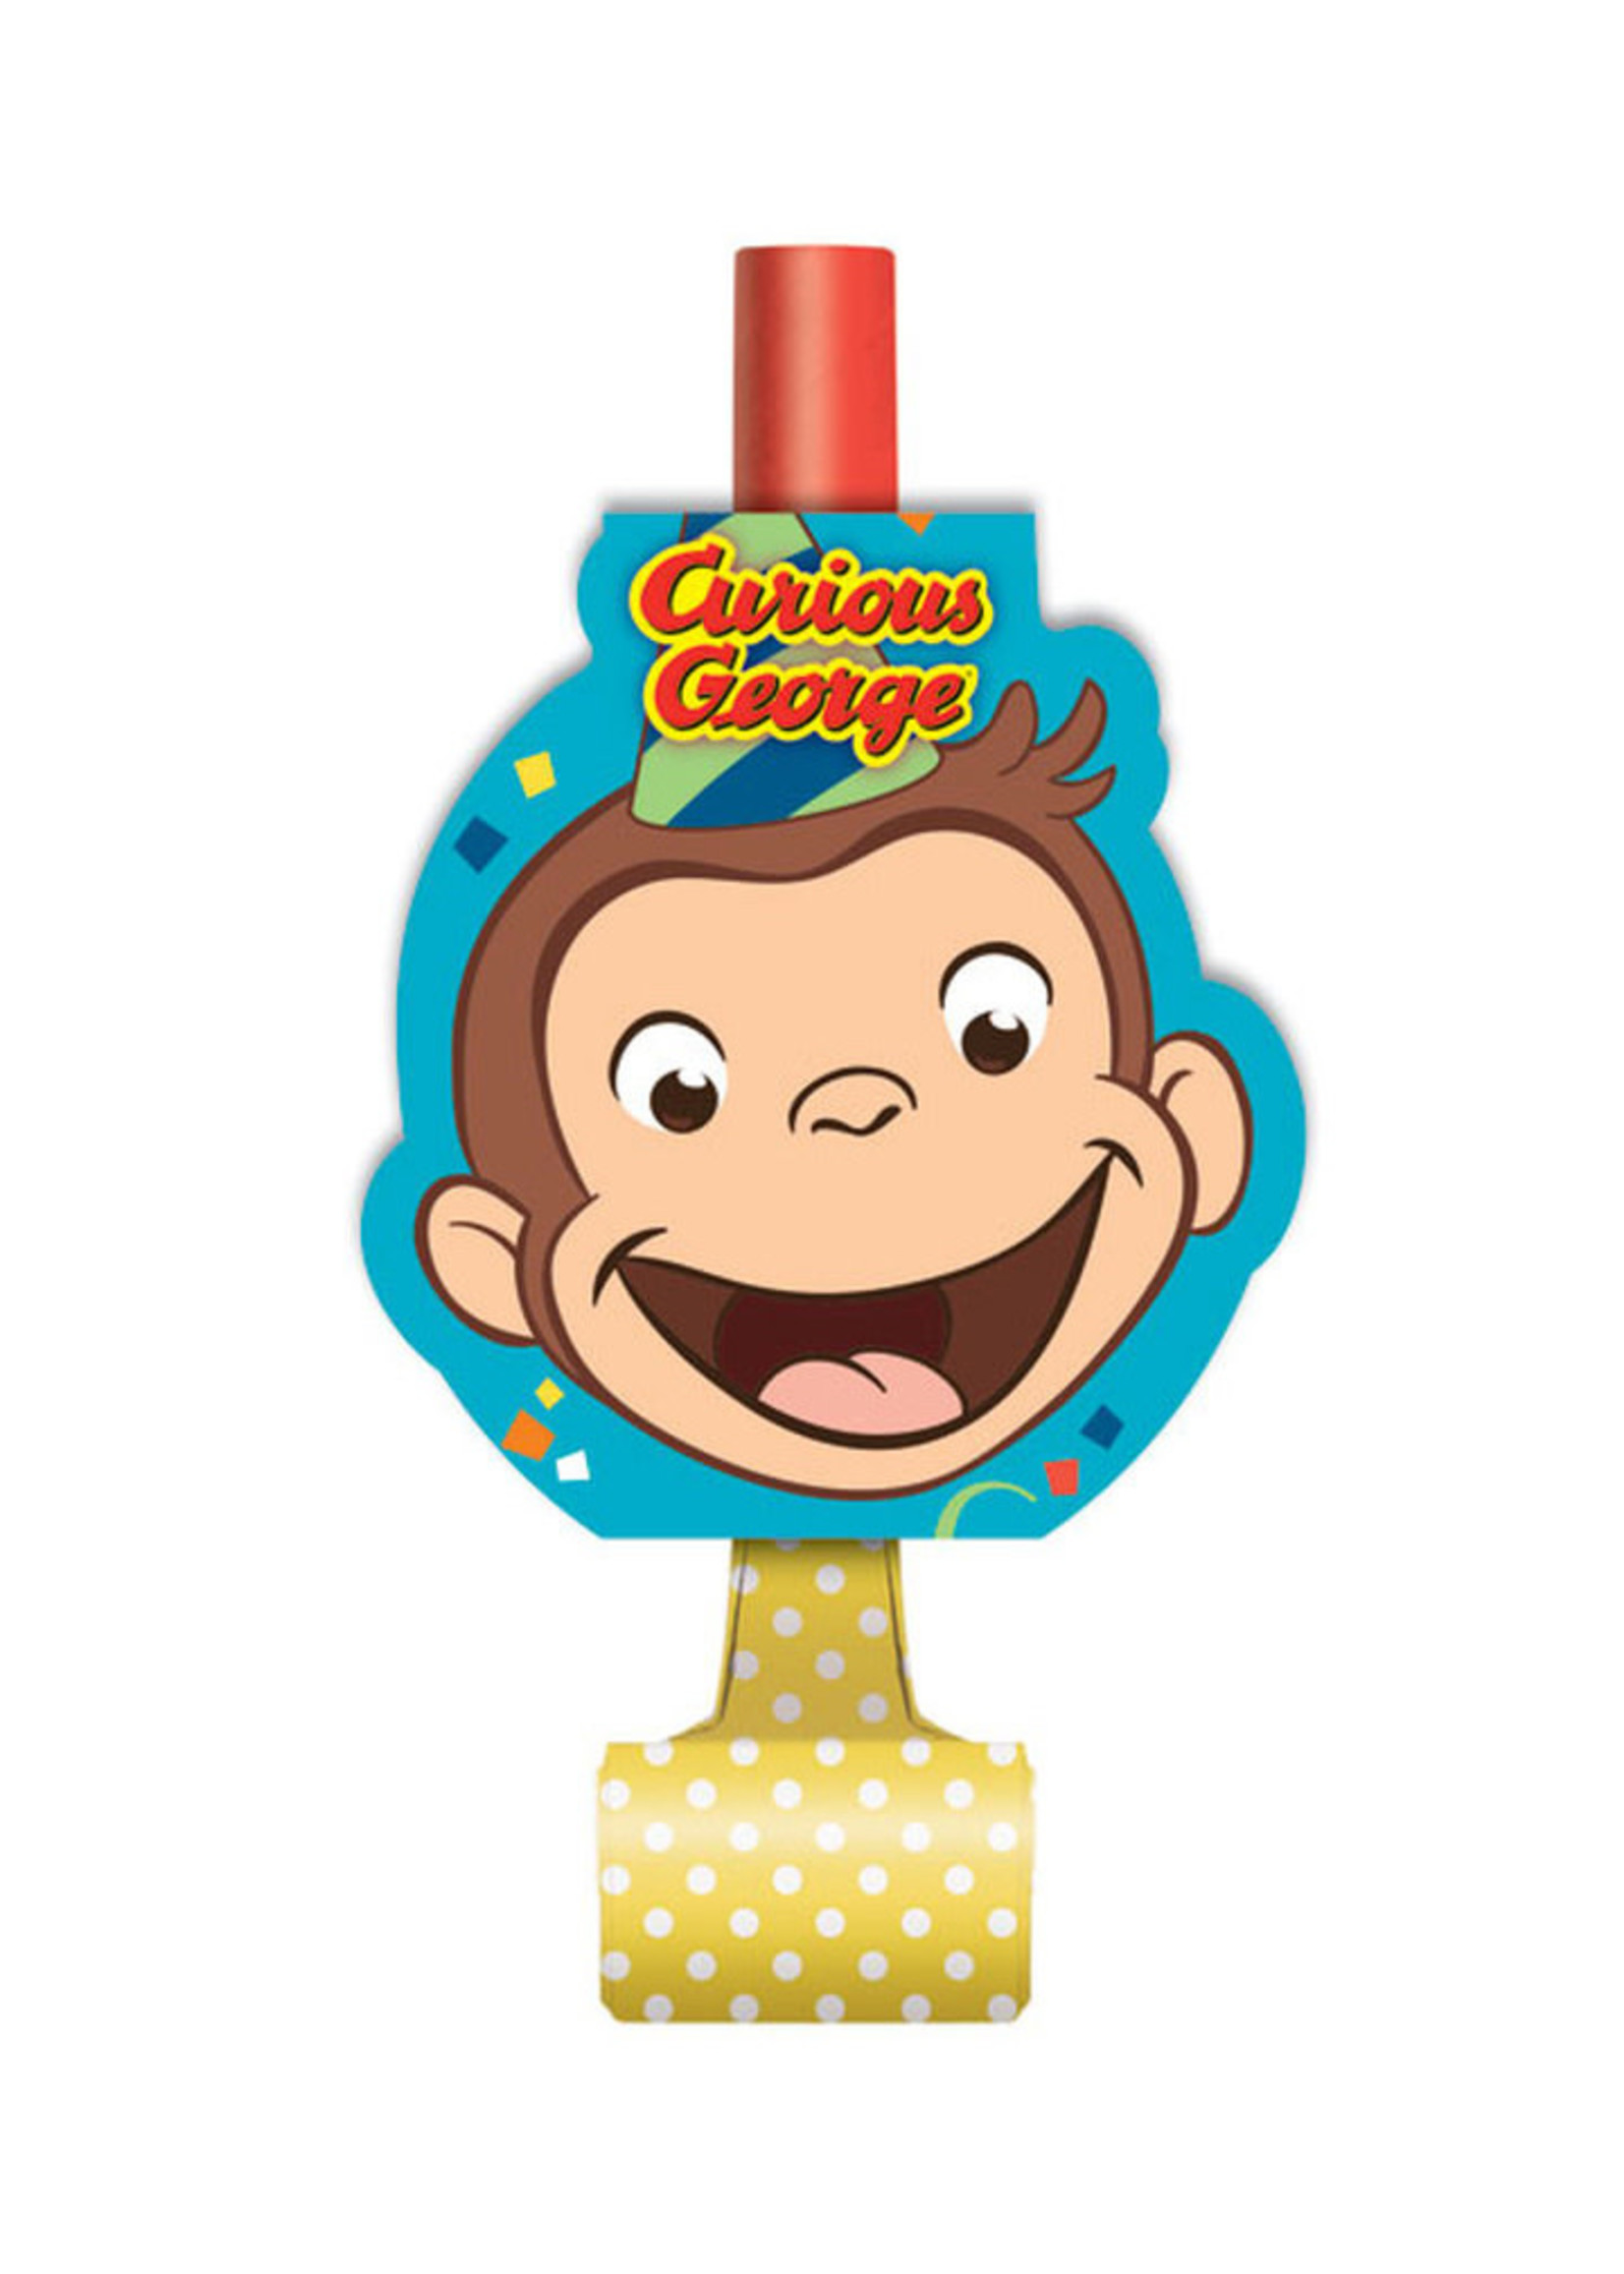 UNIQUE INDUSTRIES INC Curious George Blowouts - 8ct